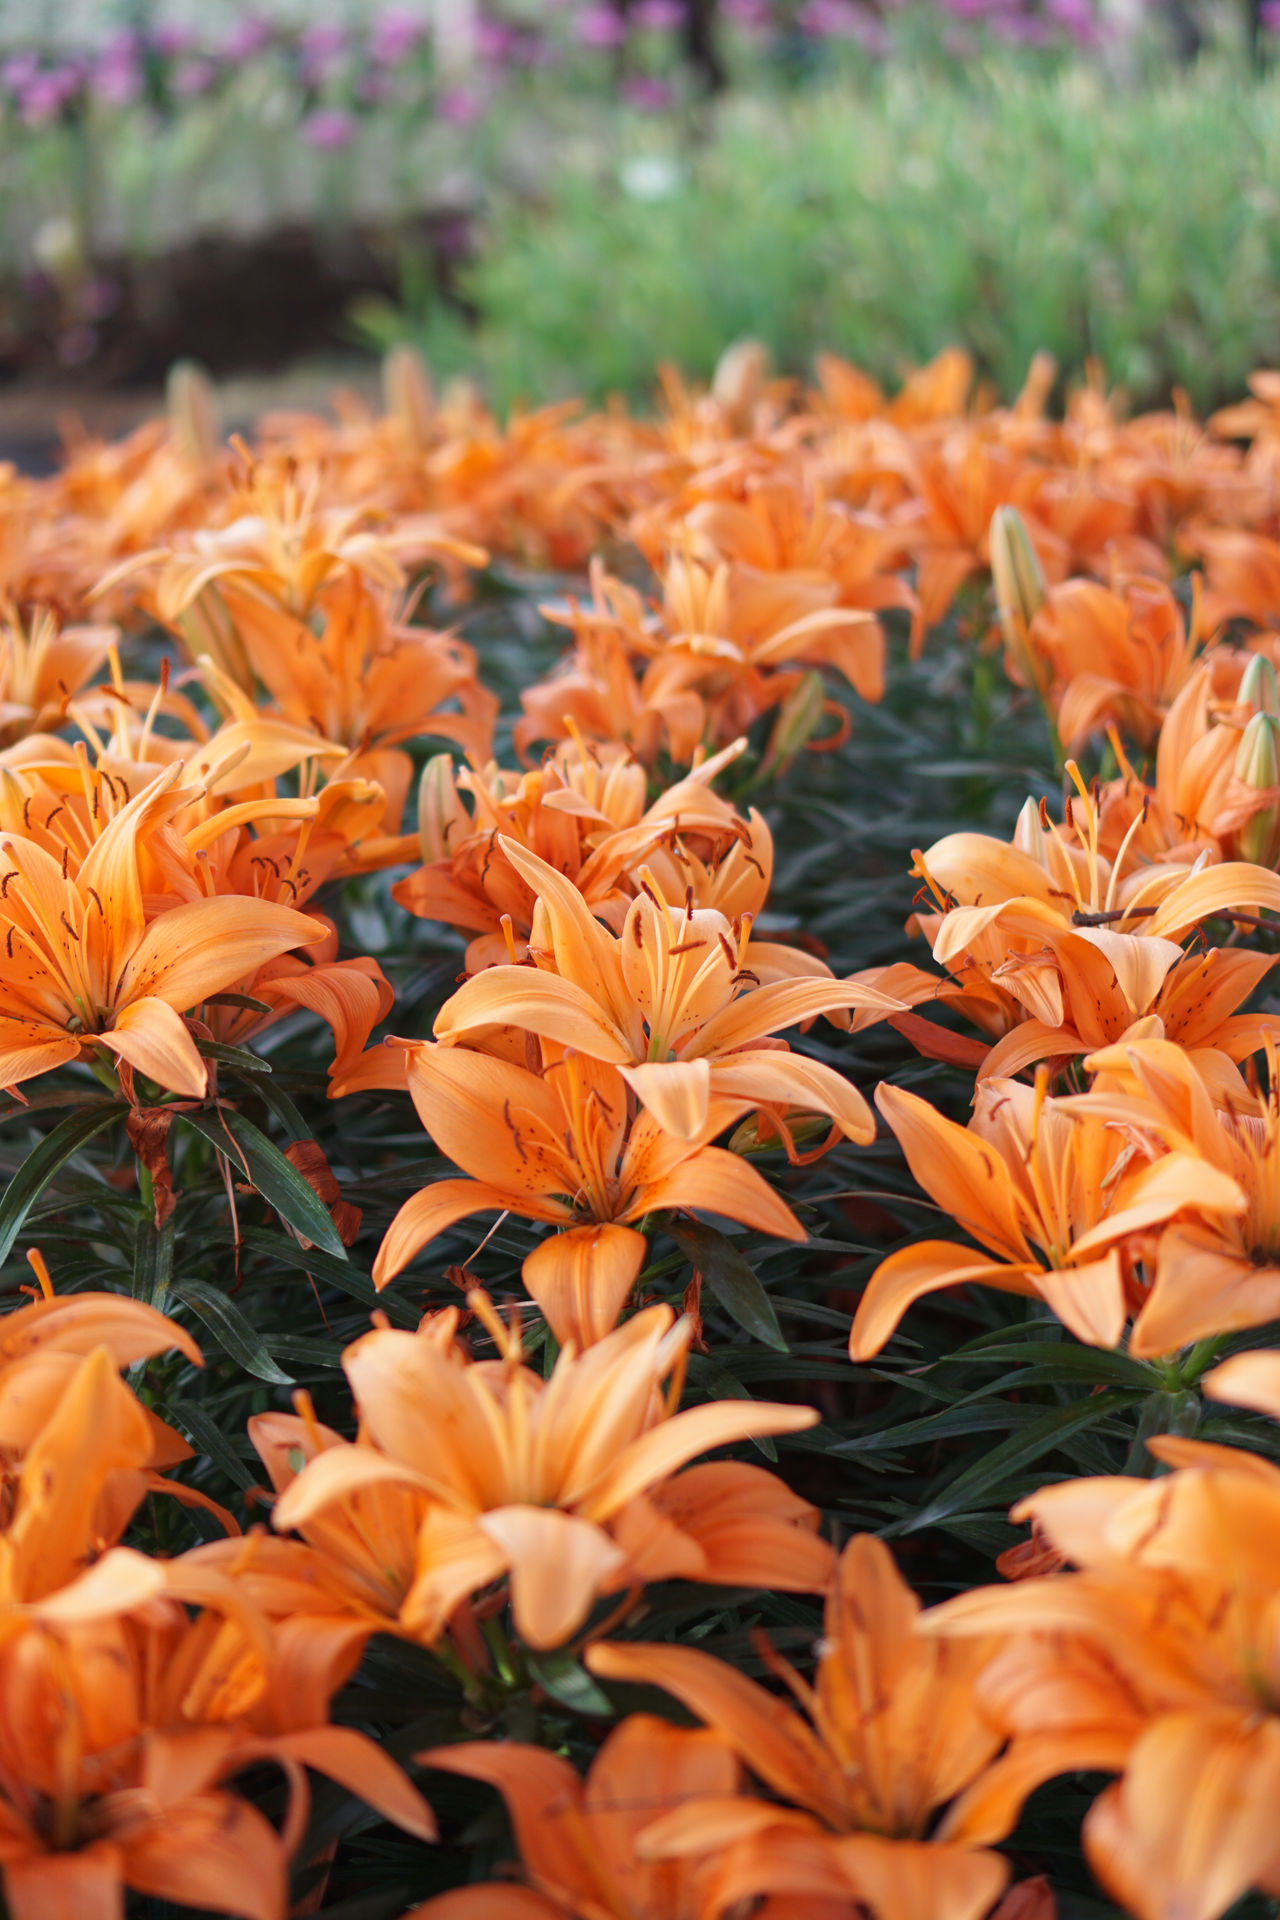 Orange Lilies Beauty In Nature Blooming Close-up Day Field Flower Flower Head Fragility Freshness Growth Lilies In Bloom Nature No People Orange Color Outdoors Petal Plant